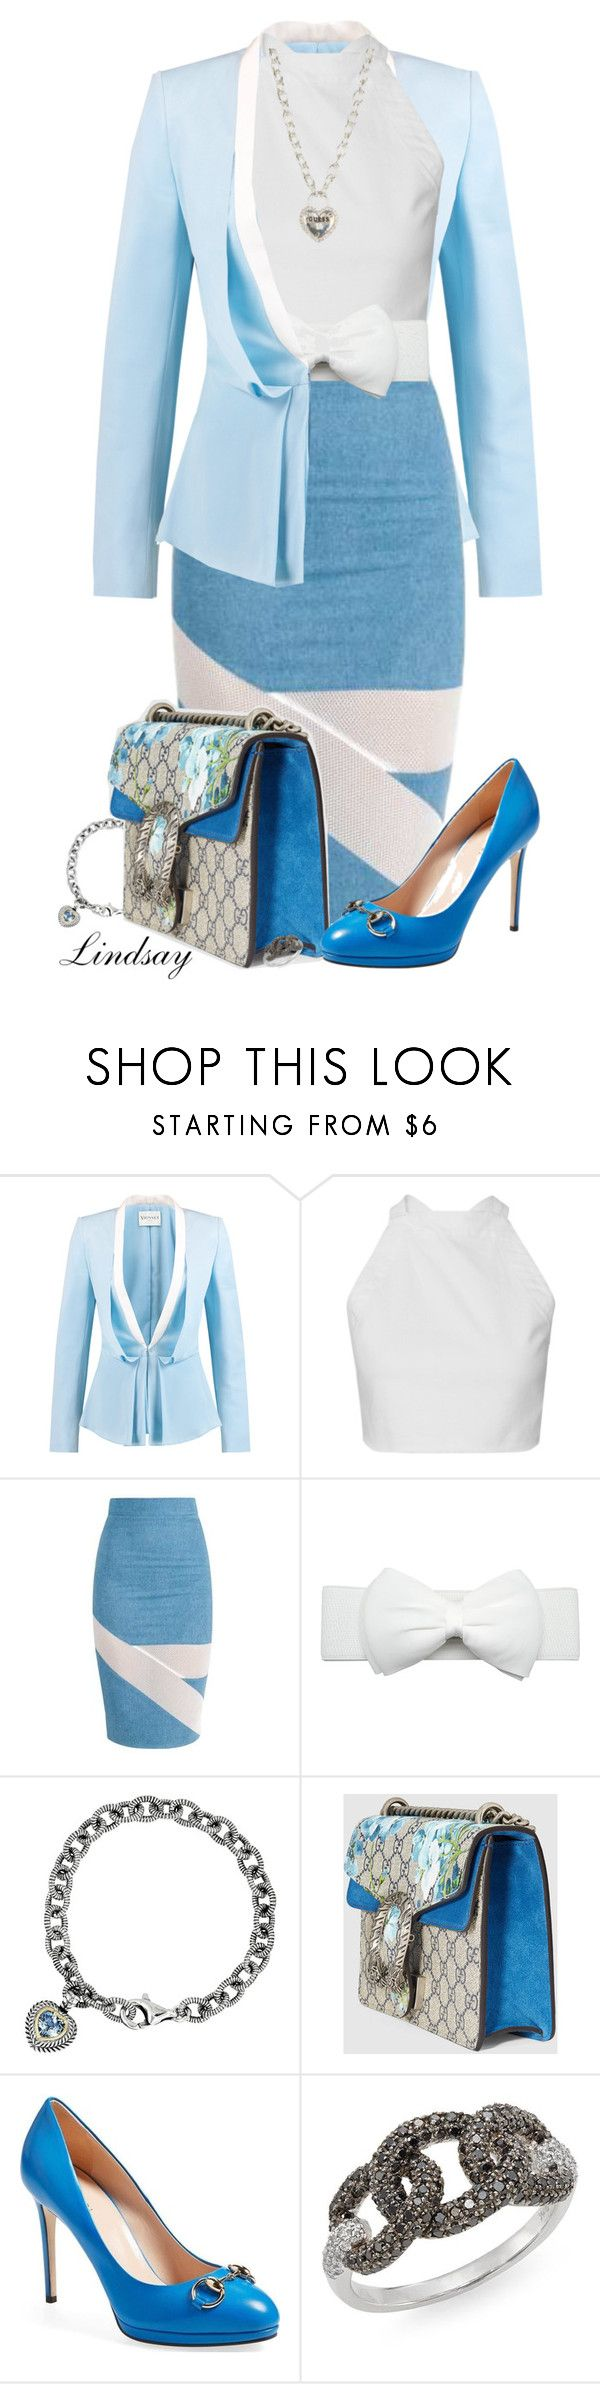 """Gucci Dionysus Gg Blooms Mini Bag"" by lindsayd78 ❤ liked on Polyvore featuring Vionnet, Gucci, Effy Jewelry and GUESS"